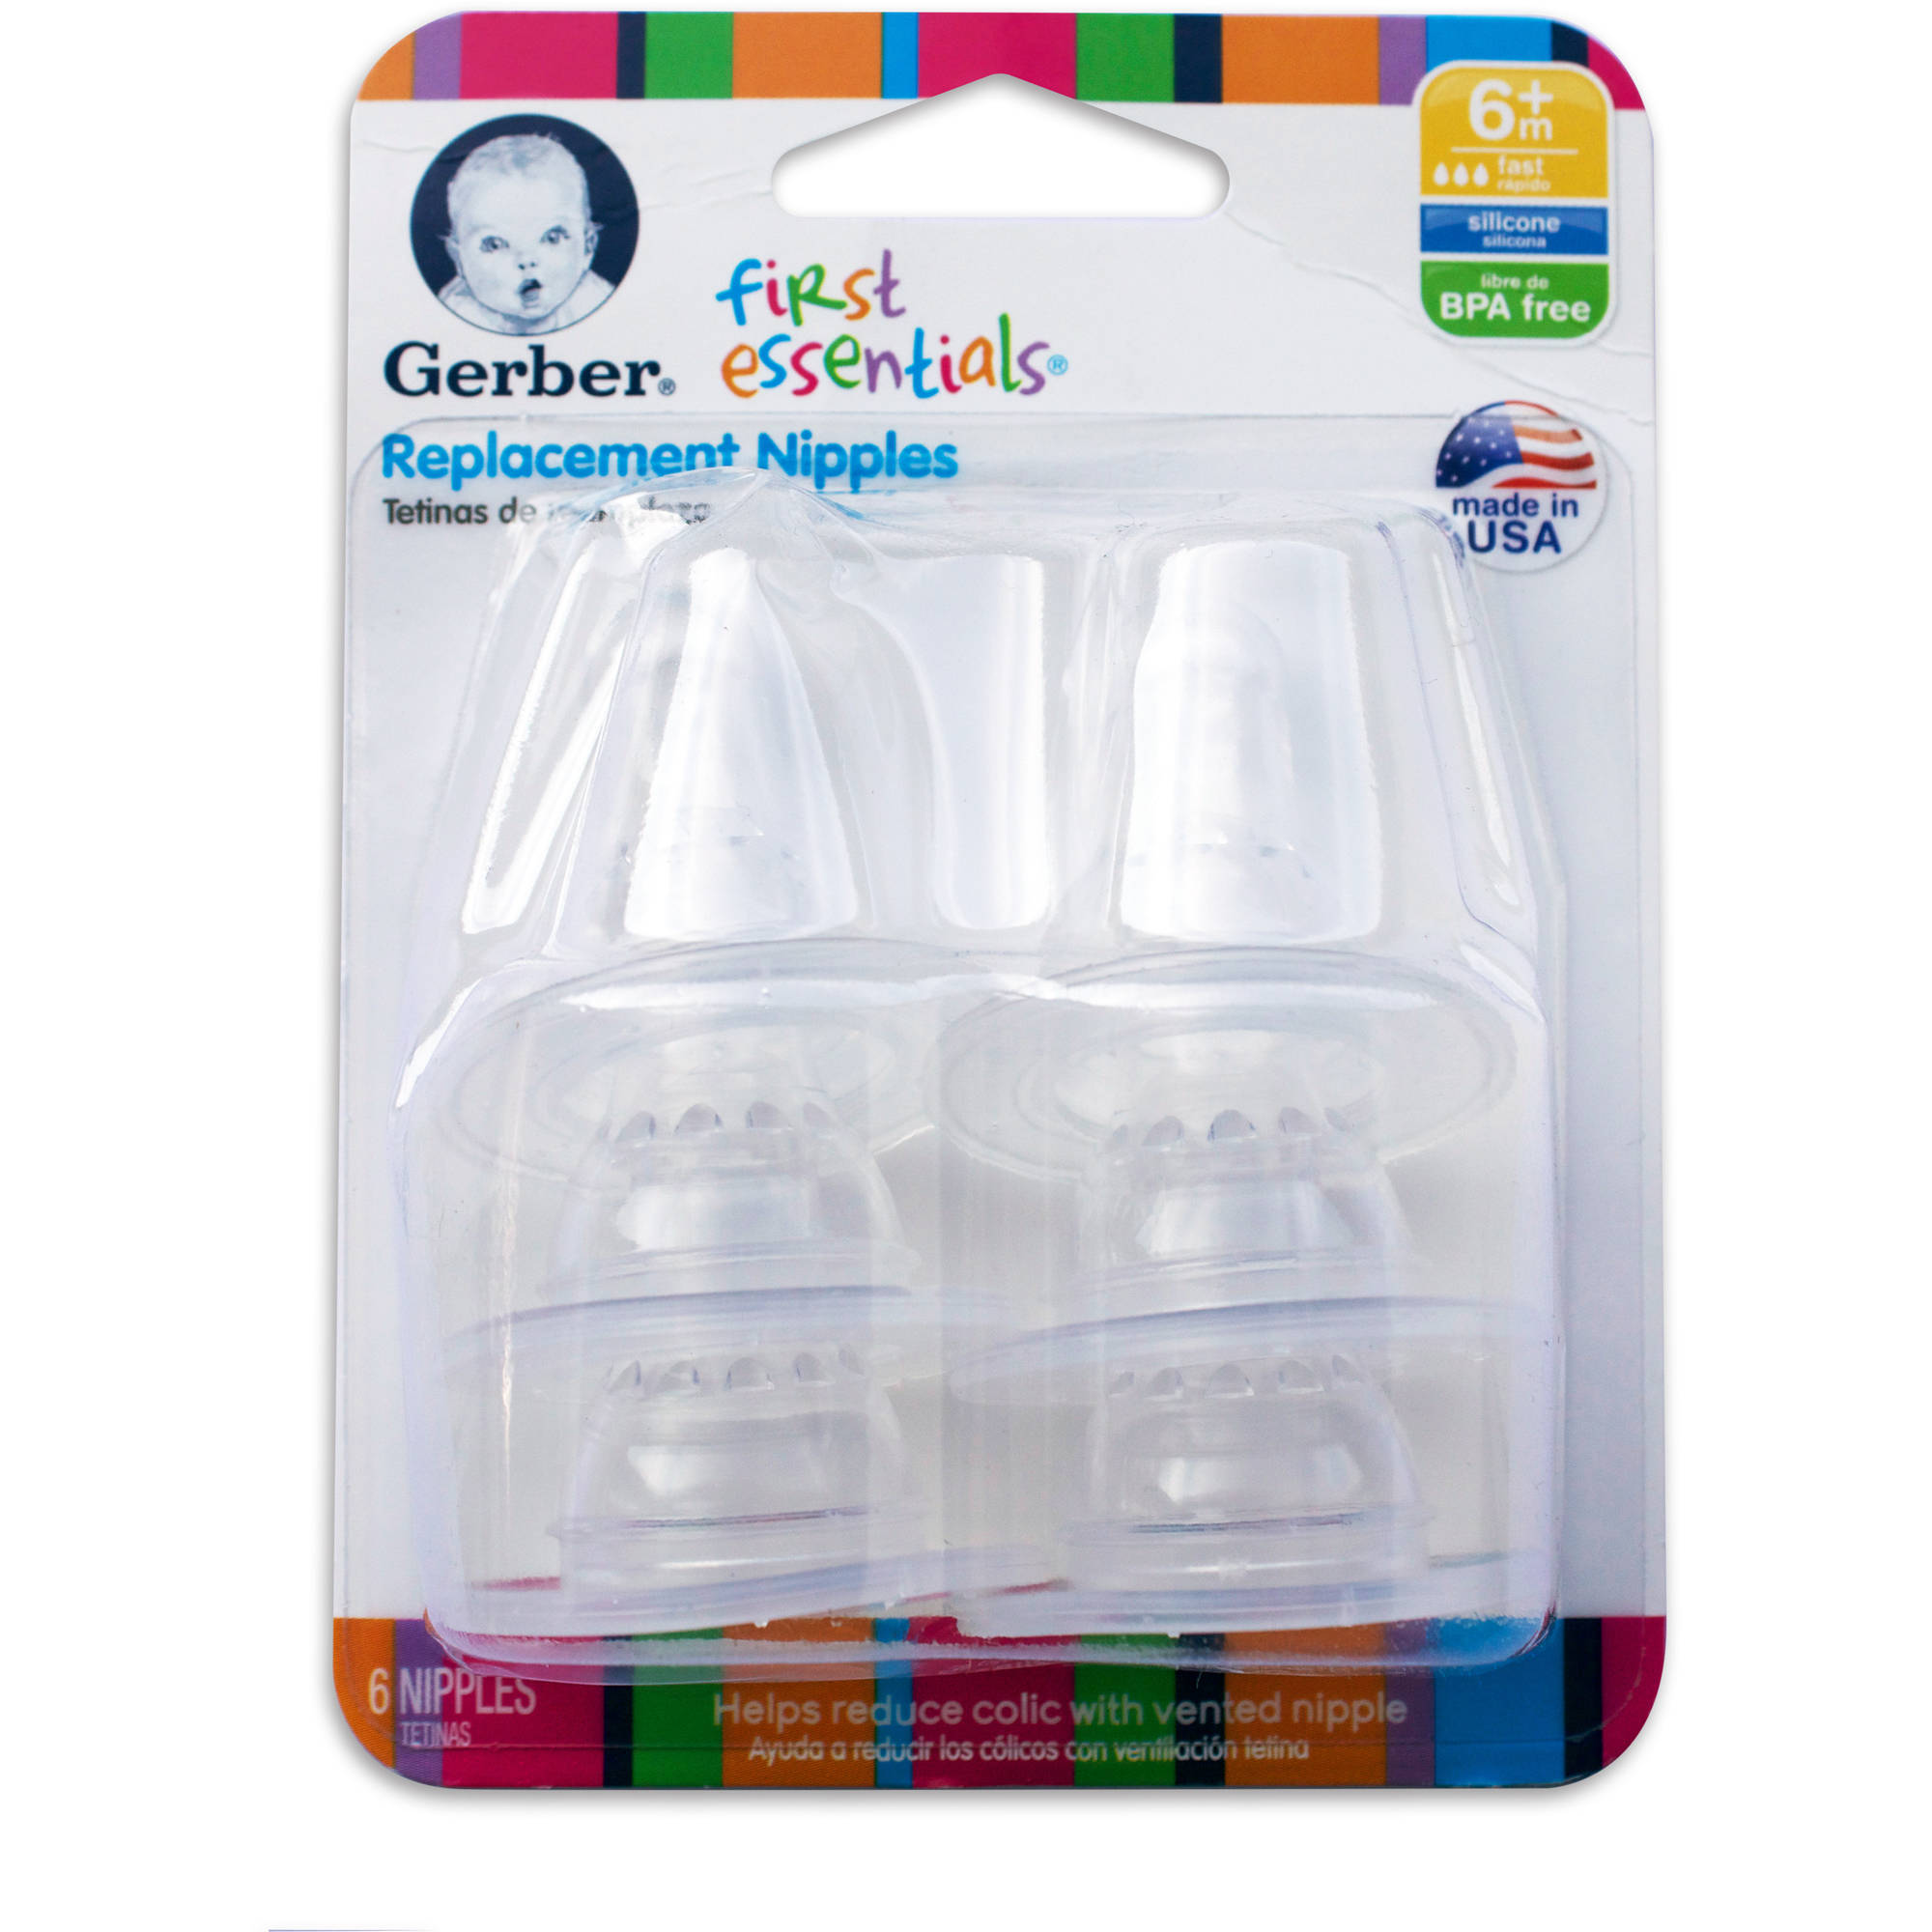 Gerber First Essentials Fast Flow Silicone Nipples, BPA-Free, 6pk